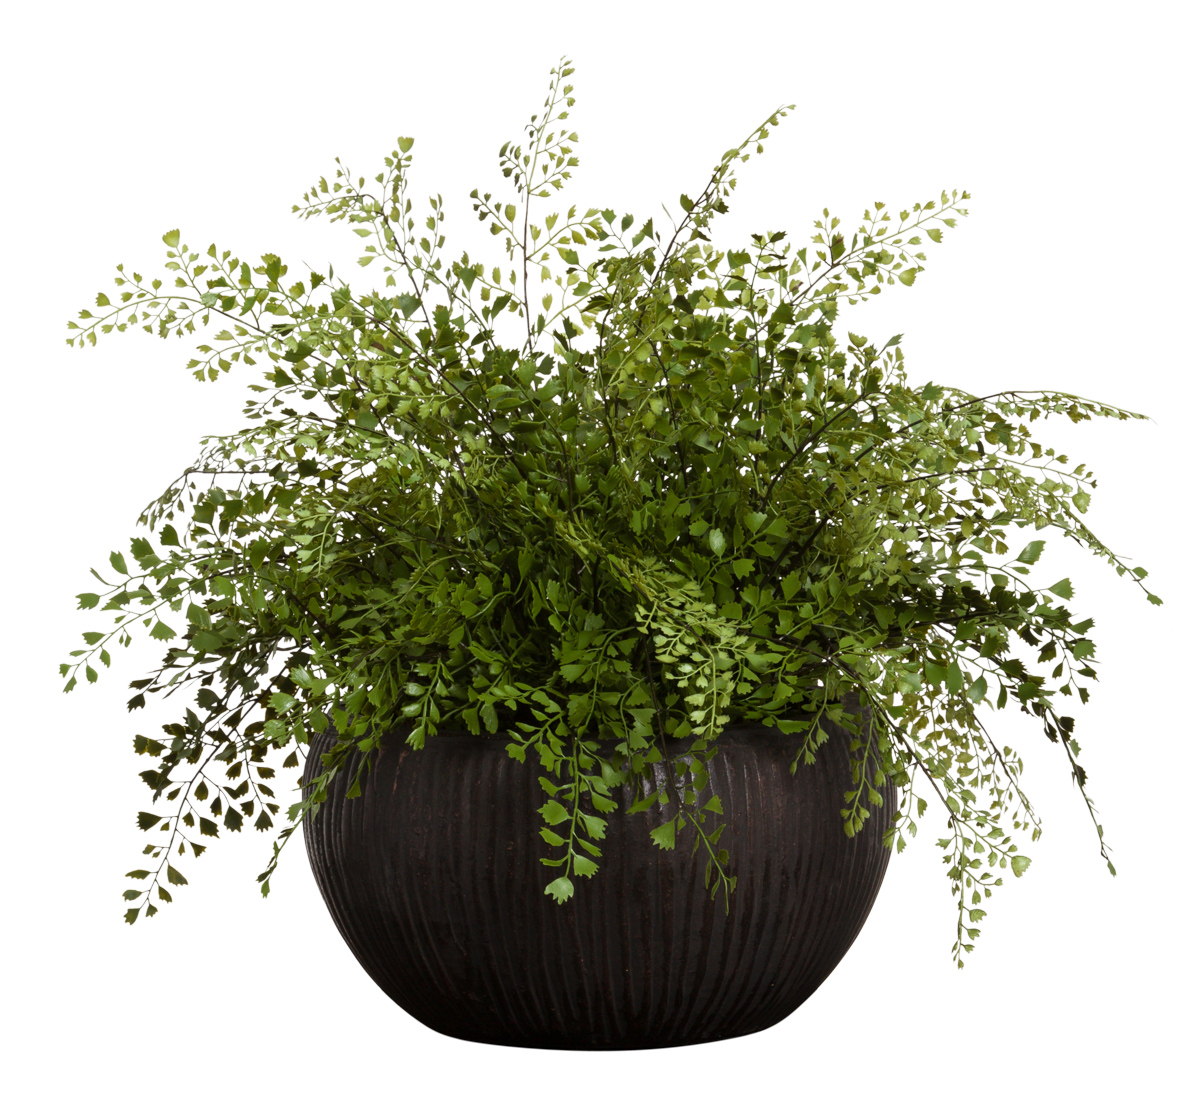 MAIDEN HAIR FERN IN BROWN POT